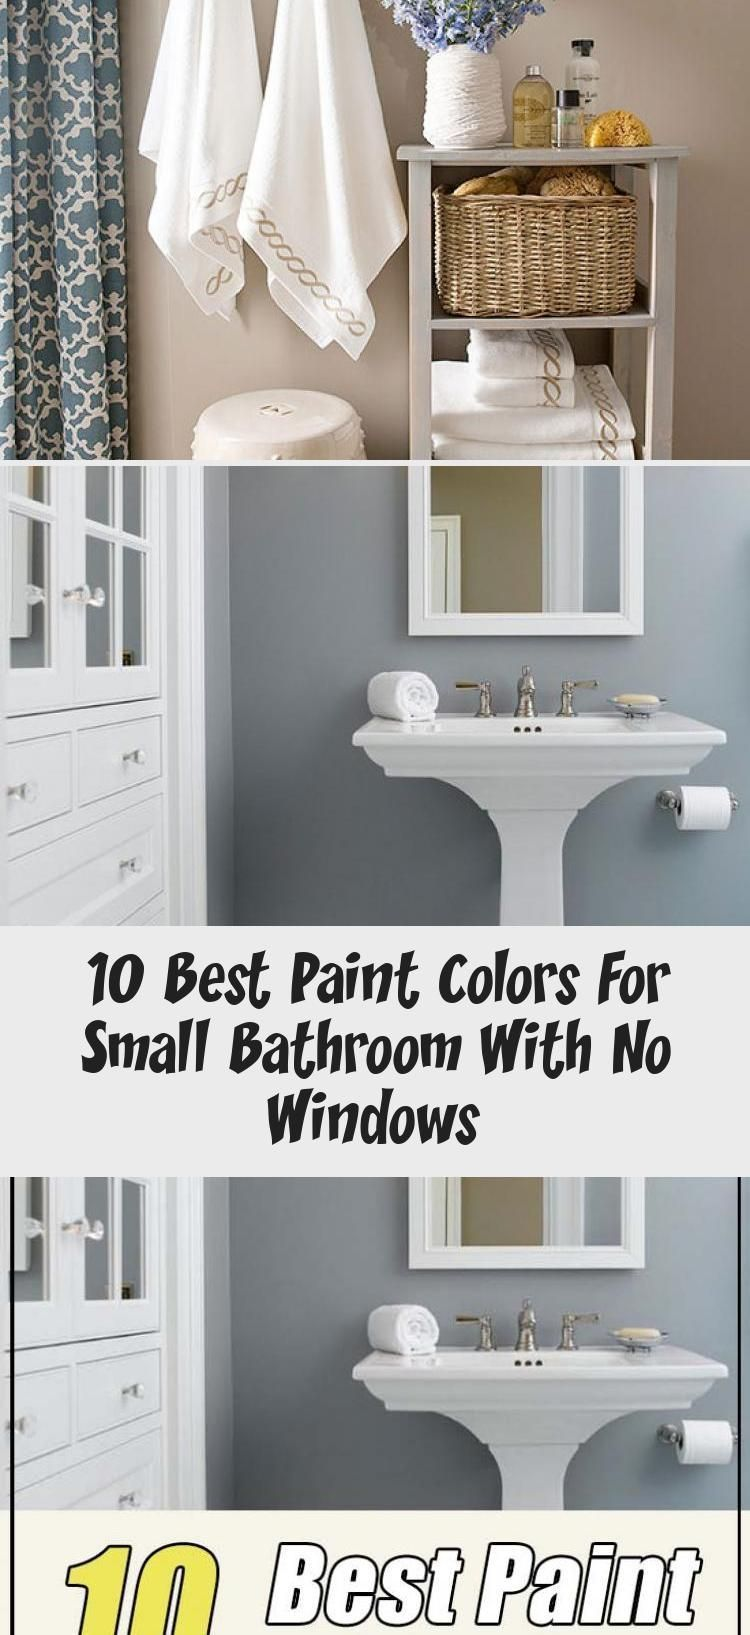 10 Best Paint Colors For Small Bathroom With No Windows Bathroom Neutralbathr Bathr In 2020 Small Bathroom Colors Small Bathroom Paint Colors Gray Bathroom Decor